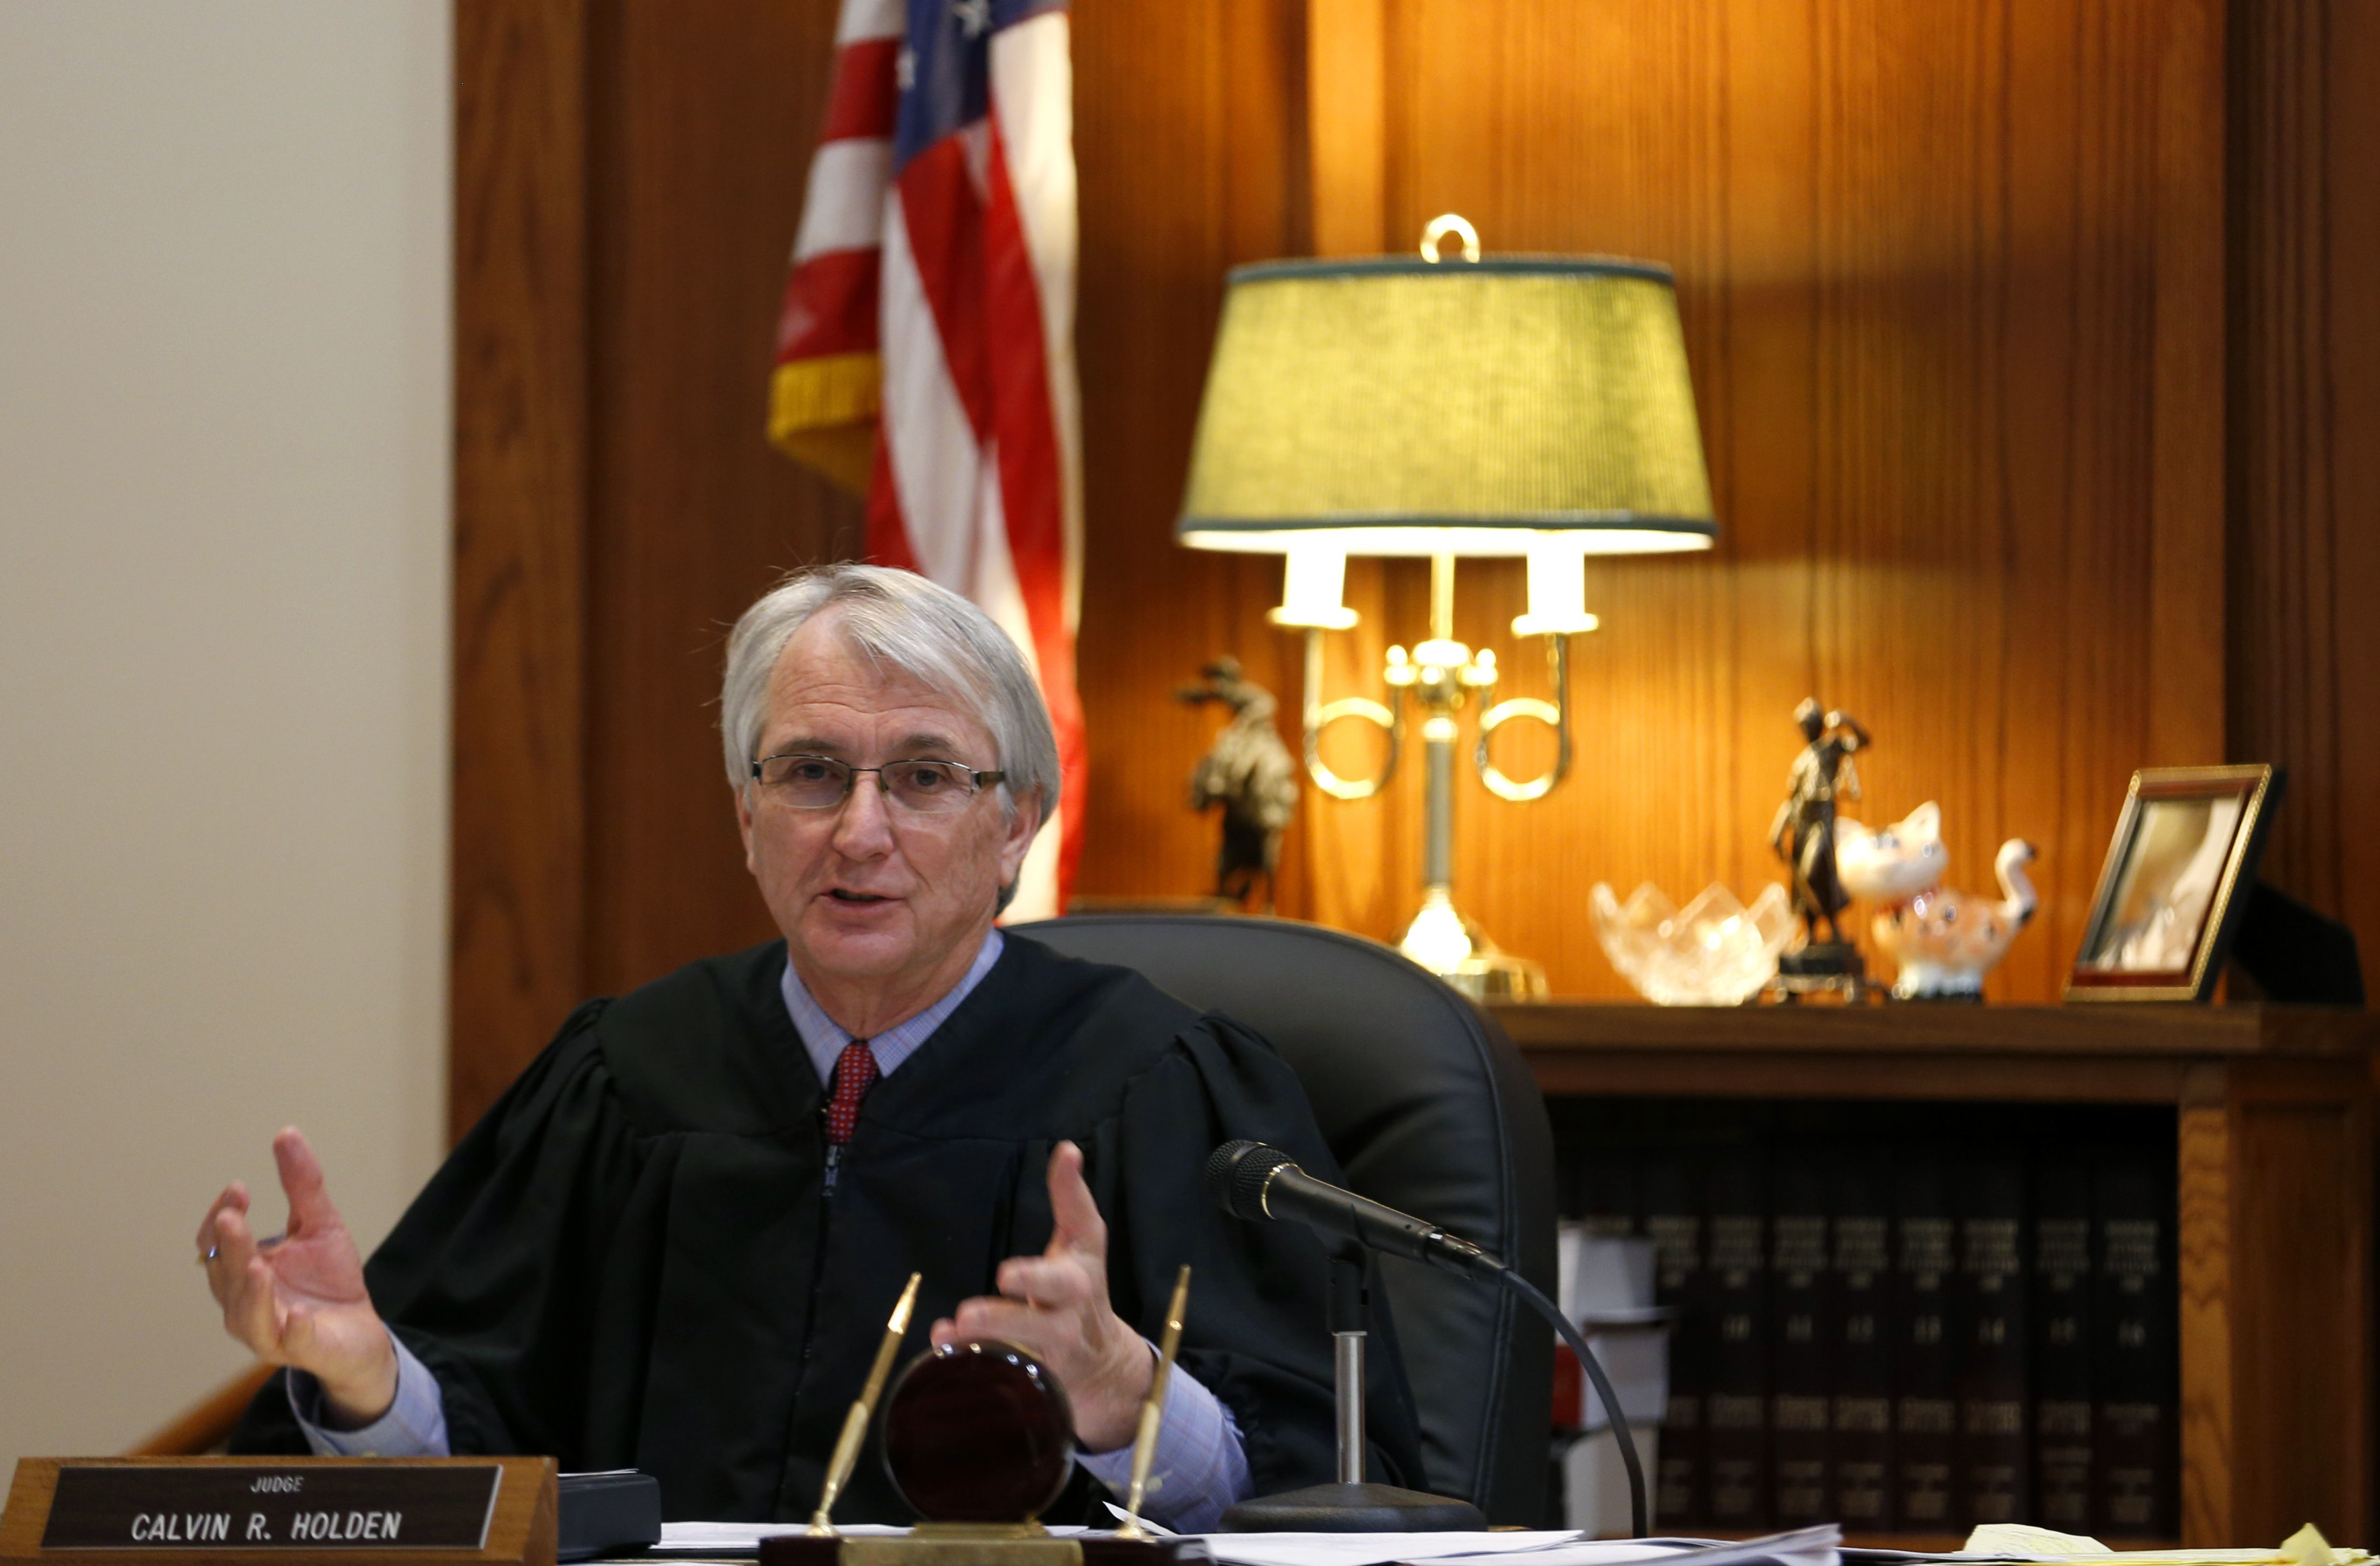 Judge Calvin Holden in a 2015 file photo